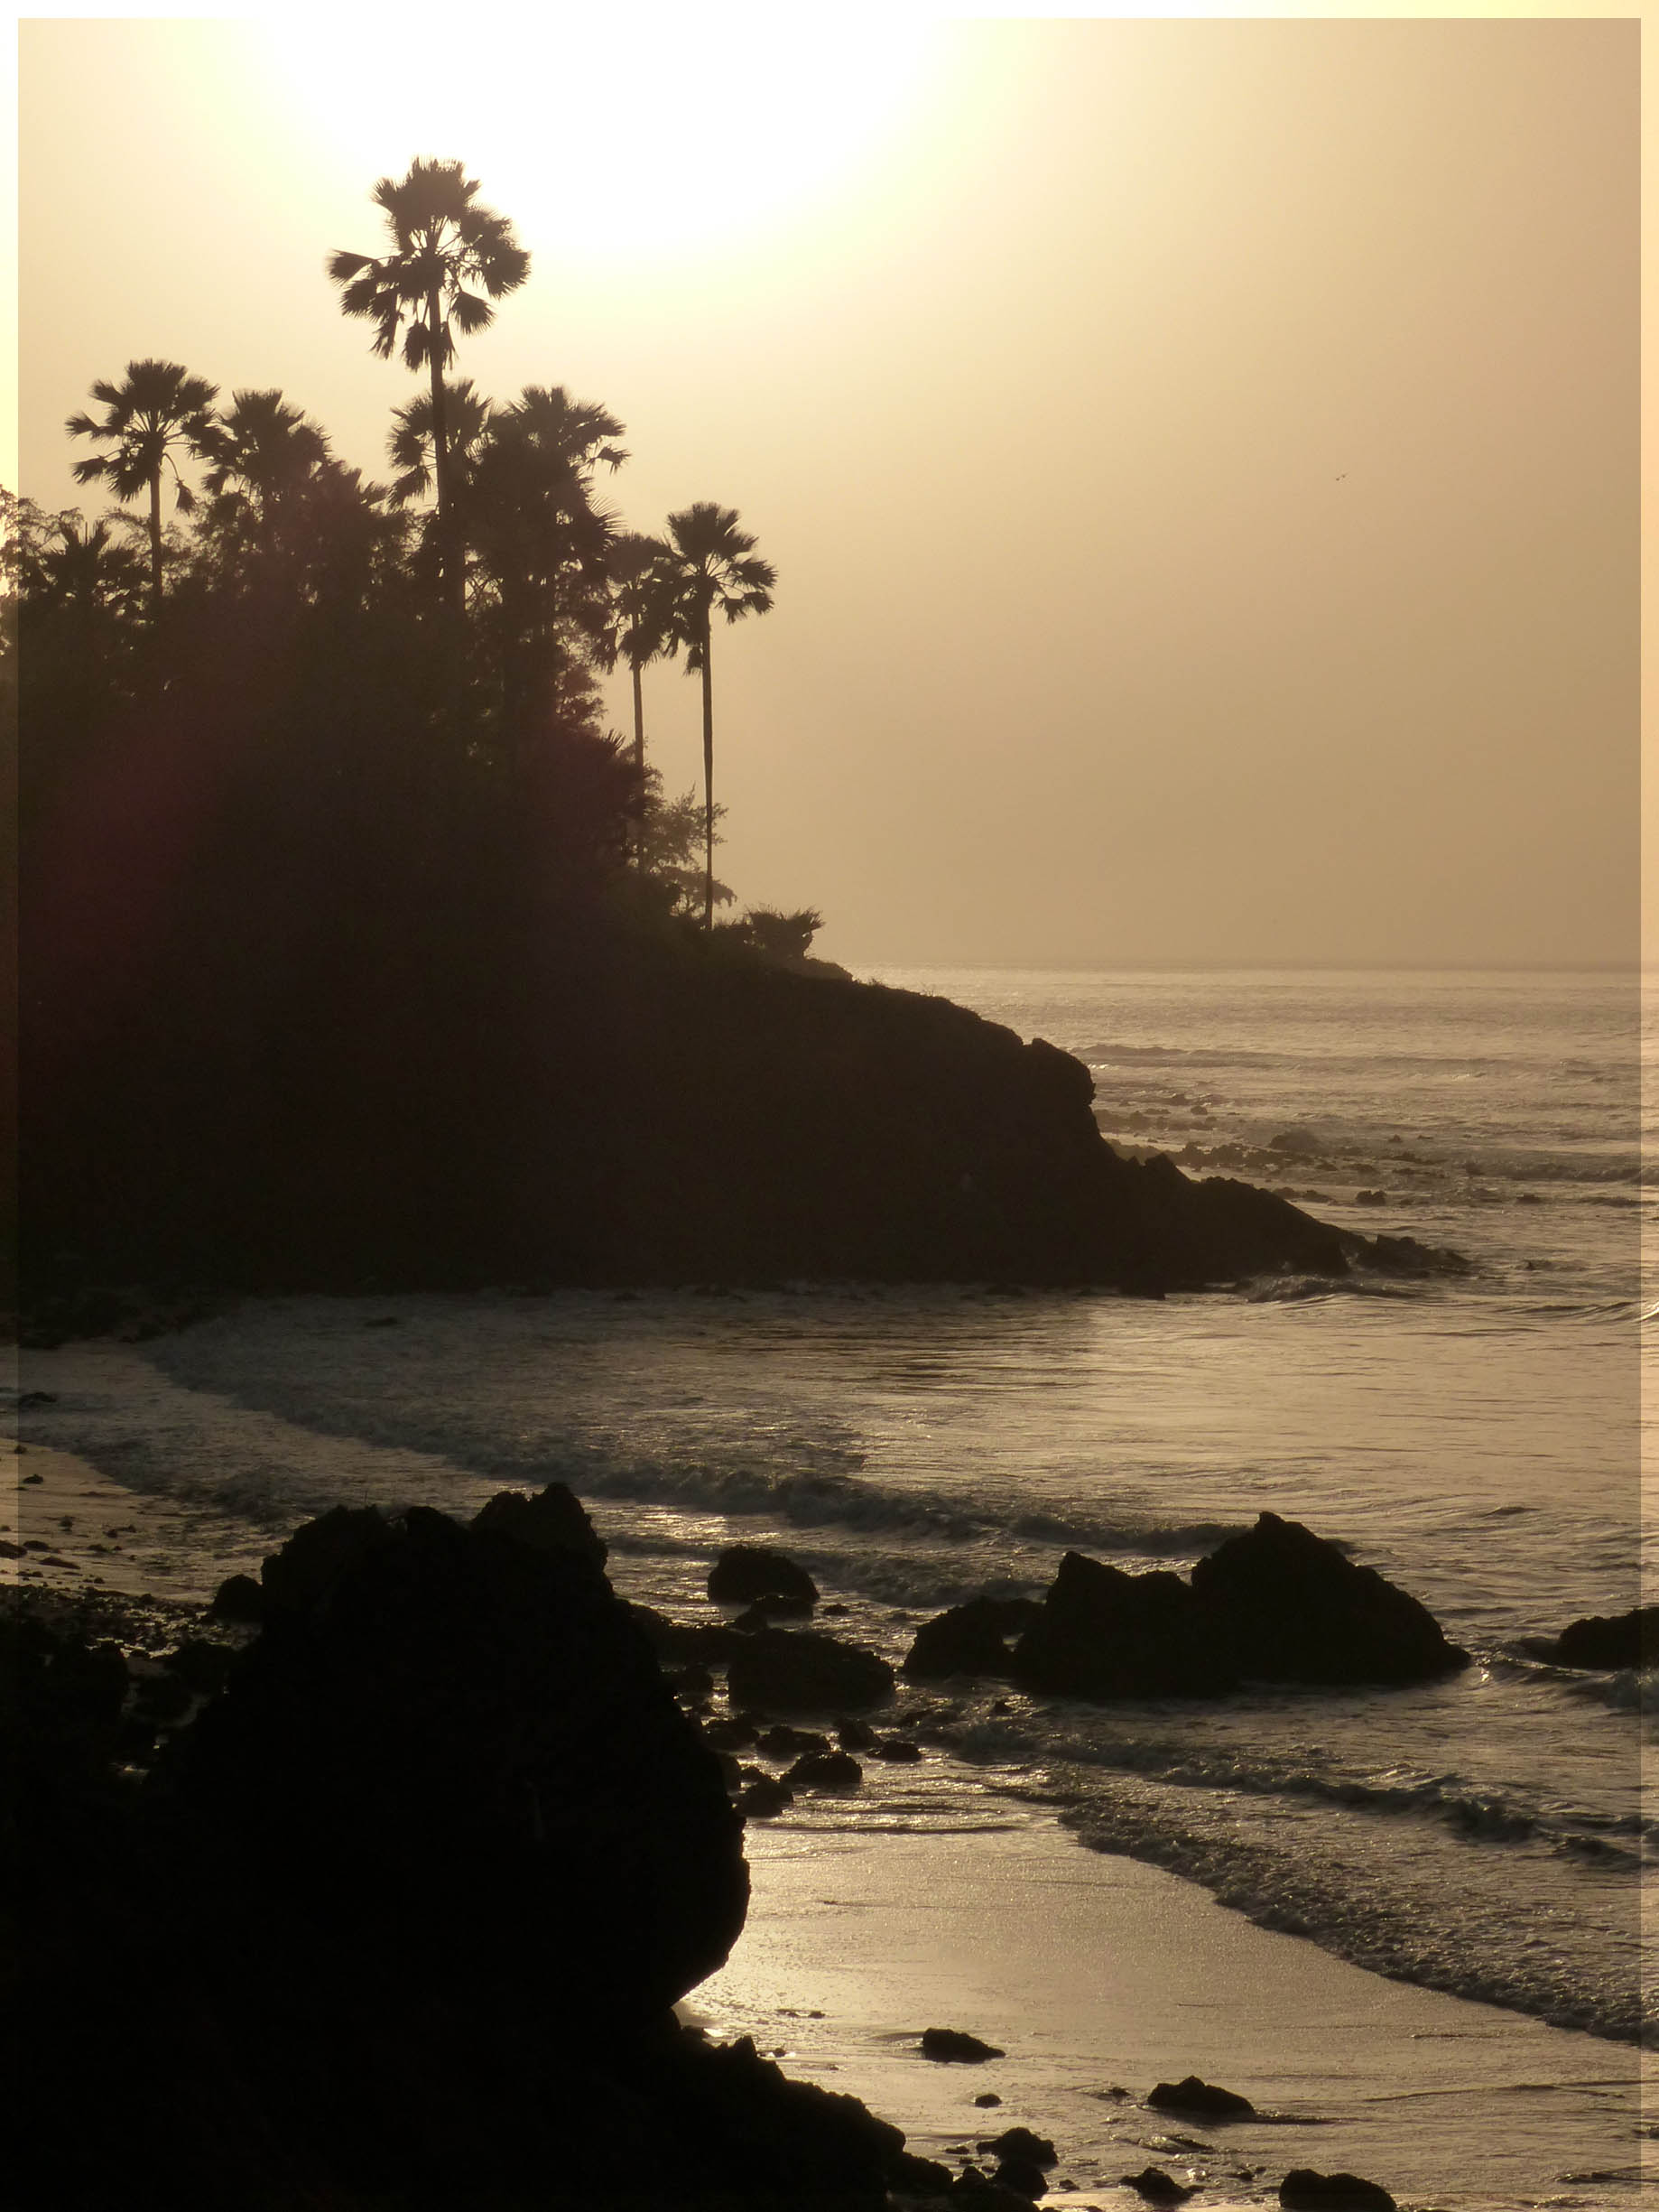 Low cliffs and palm trees silhouetted against the sun